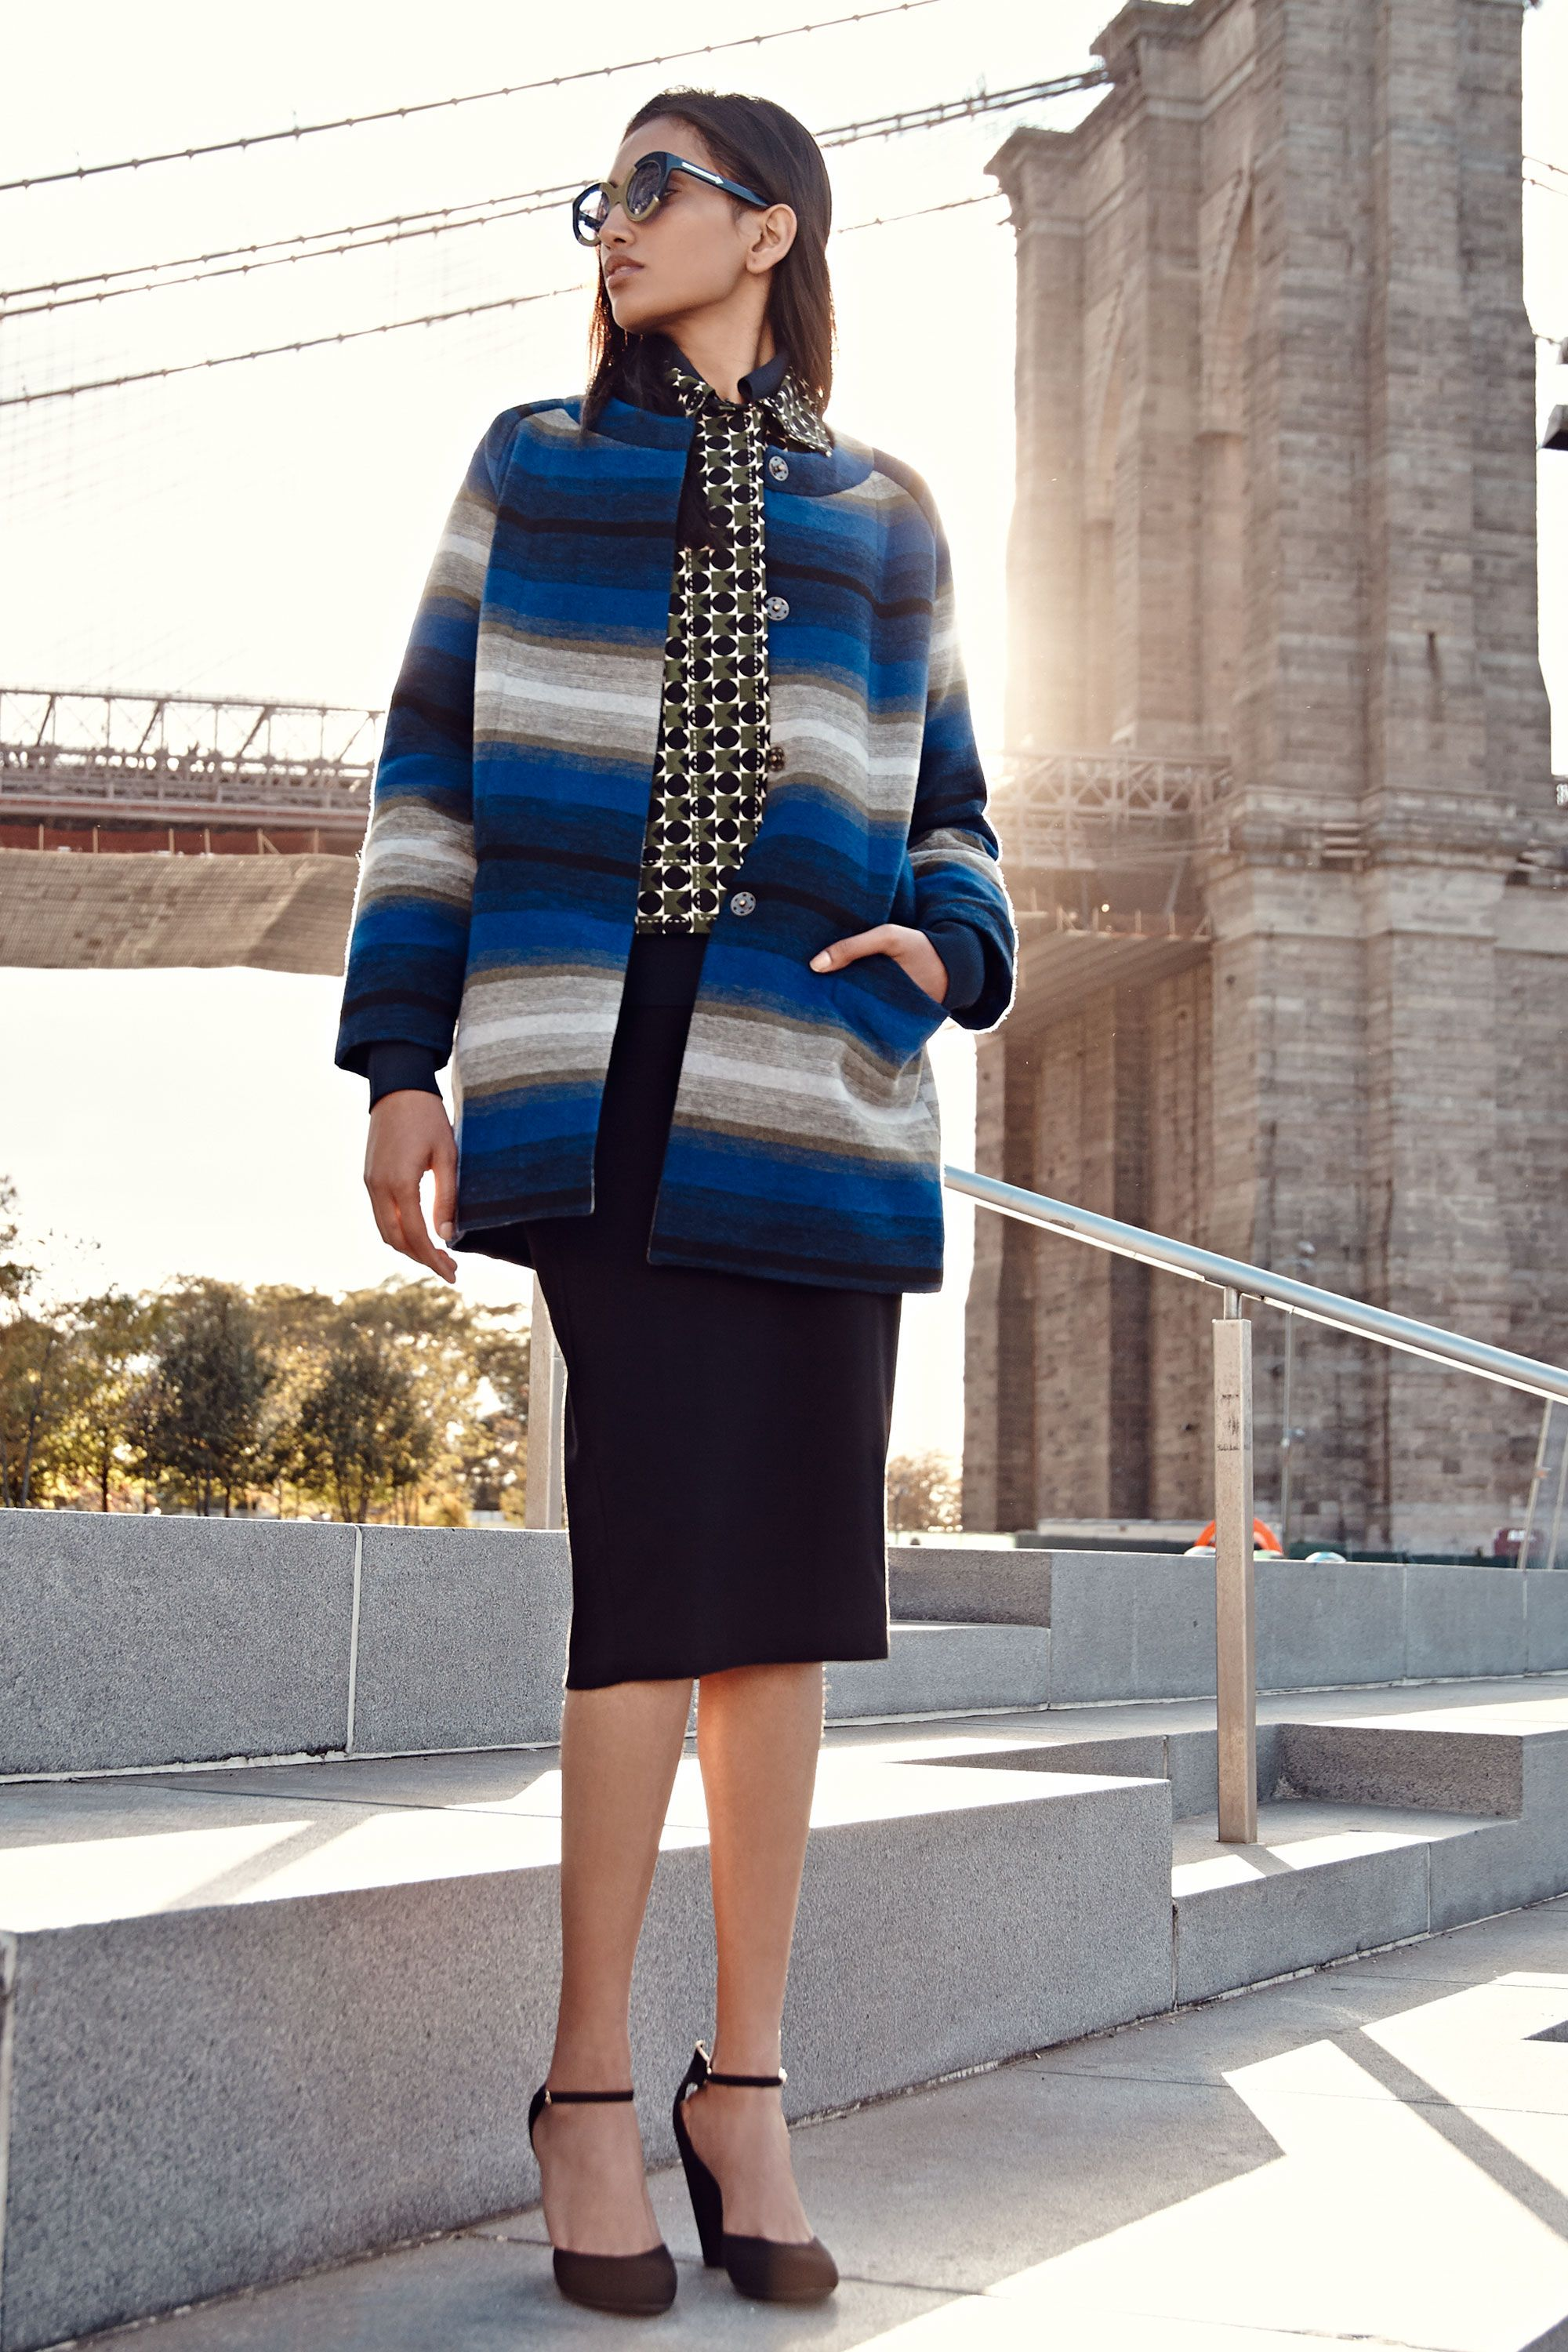 "<p>Dig the spotlight? Then you'll shine in an attention-grabbing statement coat. This one's rich indigo hue and modern cut look sharp, not showy.</p><p><em><em>Old Navy Striped Collarless Jacket, $70, <a href=""http://oldnavy.gap.com/browse/product.do?cid=74688&tid=onsm004538&vid=1&pid=602590012"" target=""_blank"">oldnavy.com</a>;</em></em><em><em> Orla Kiely Jacket, <a href=""http://www.orlakiely.com/"">orlakiely.com</a>;</em></em><em><em> Old Navy Calf-Length Pencil Skirt, $17, <a href=""http://oldnavy.gap.com/browse/product.do?cid=1011461&tid=onsm004538&vid=1&pid=47774901"" target=""_blank"">oldnavy.com</a>; Old Navy Sueded D'Orsay Pumps, $34.94, <a href=""http://oldnavy.gap.com/browse/product.do?cid=55150&tid=onsm004538&vid=1&pid=780324002"" target=""_blank"">oldnavy.com</a></em></em></p>"